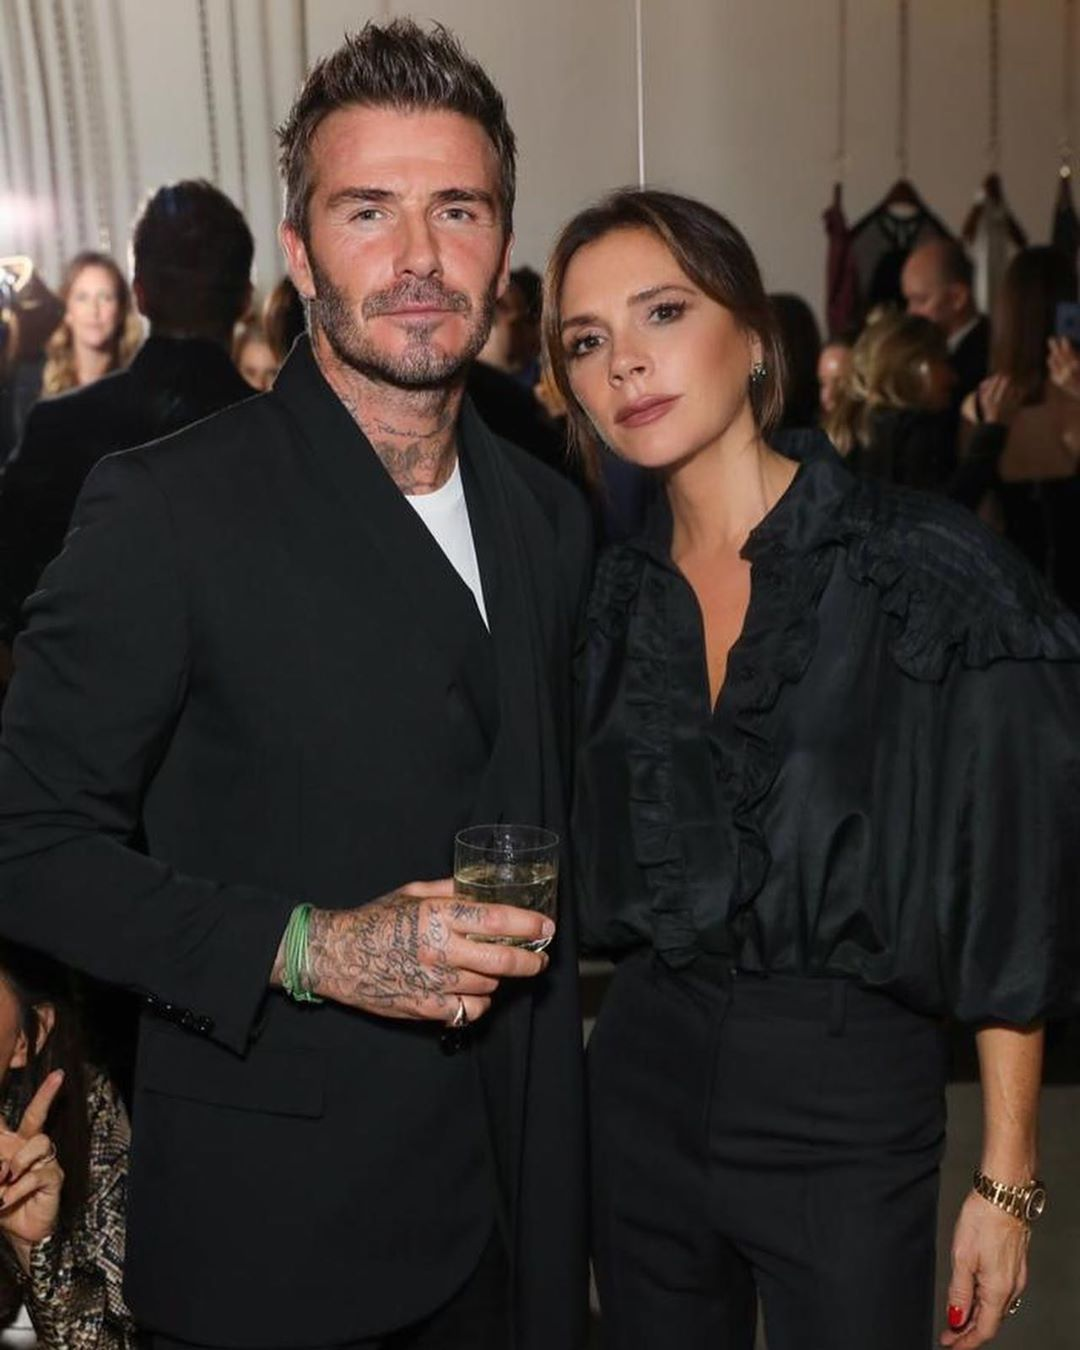 David Beckham Instagram: An incredible night celebrating the great Andy Warhol with  and friends at      ...